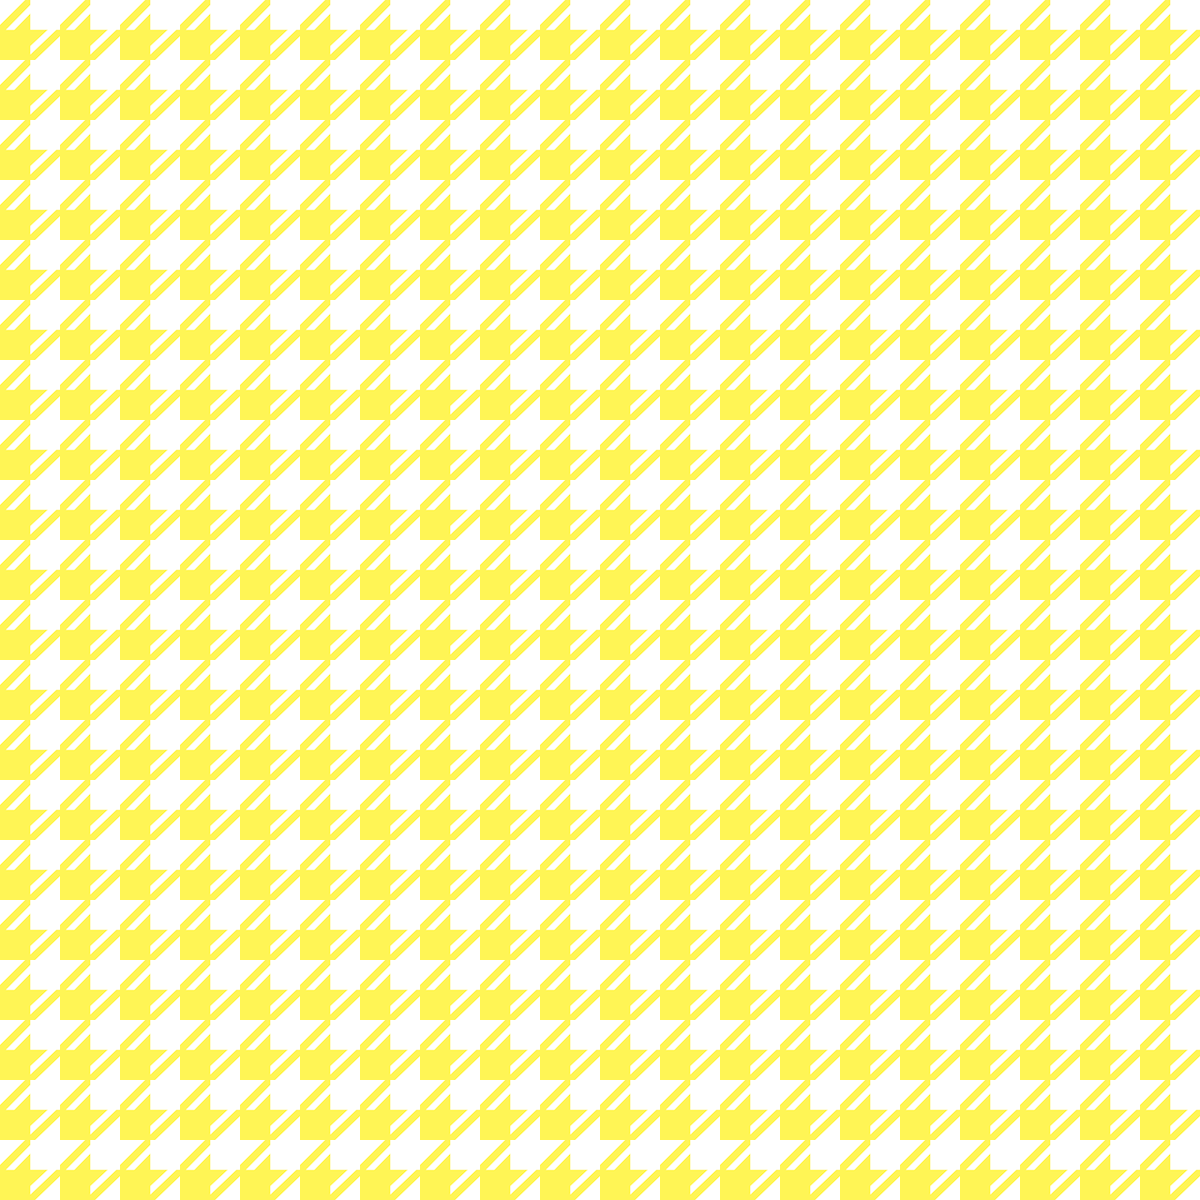 Free digital dogtooth checkered scrabpooking papers - ausdruckbares ...